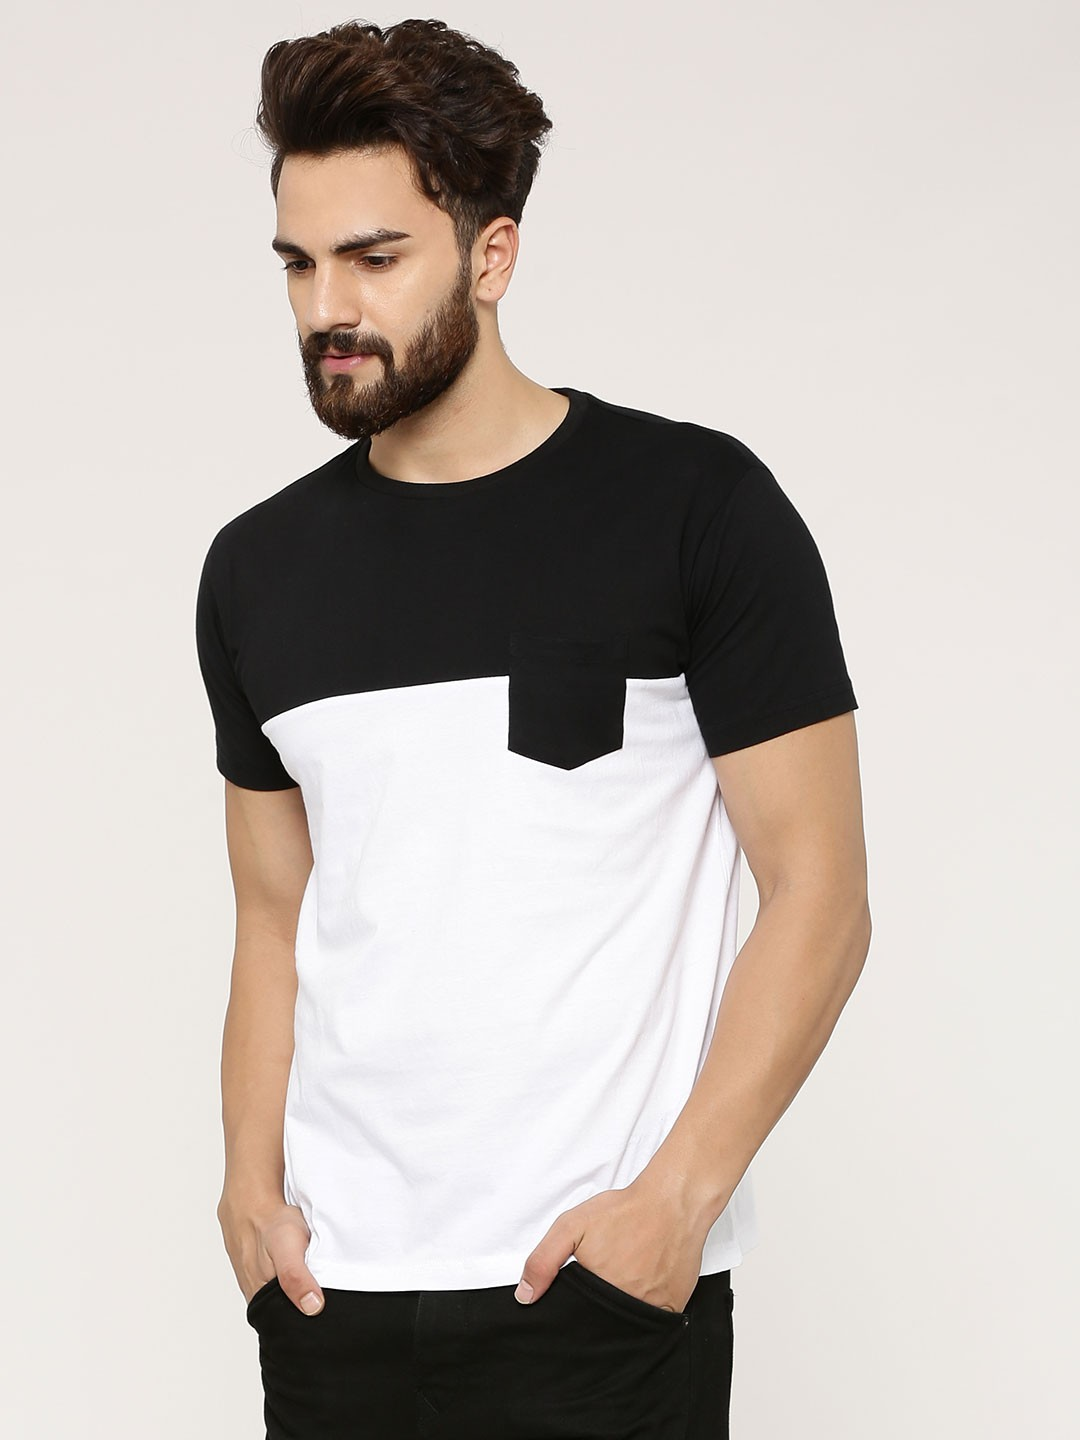 Spring Break colour block t-shirt by Koovz